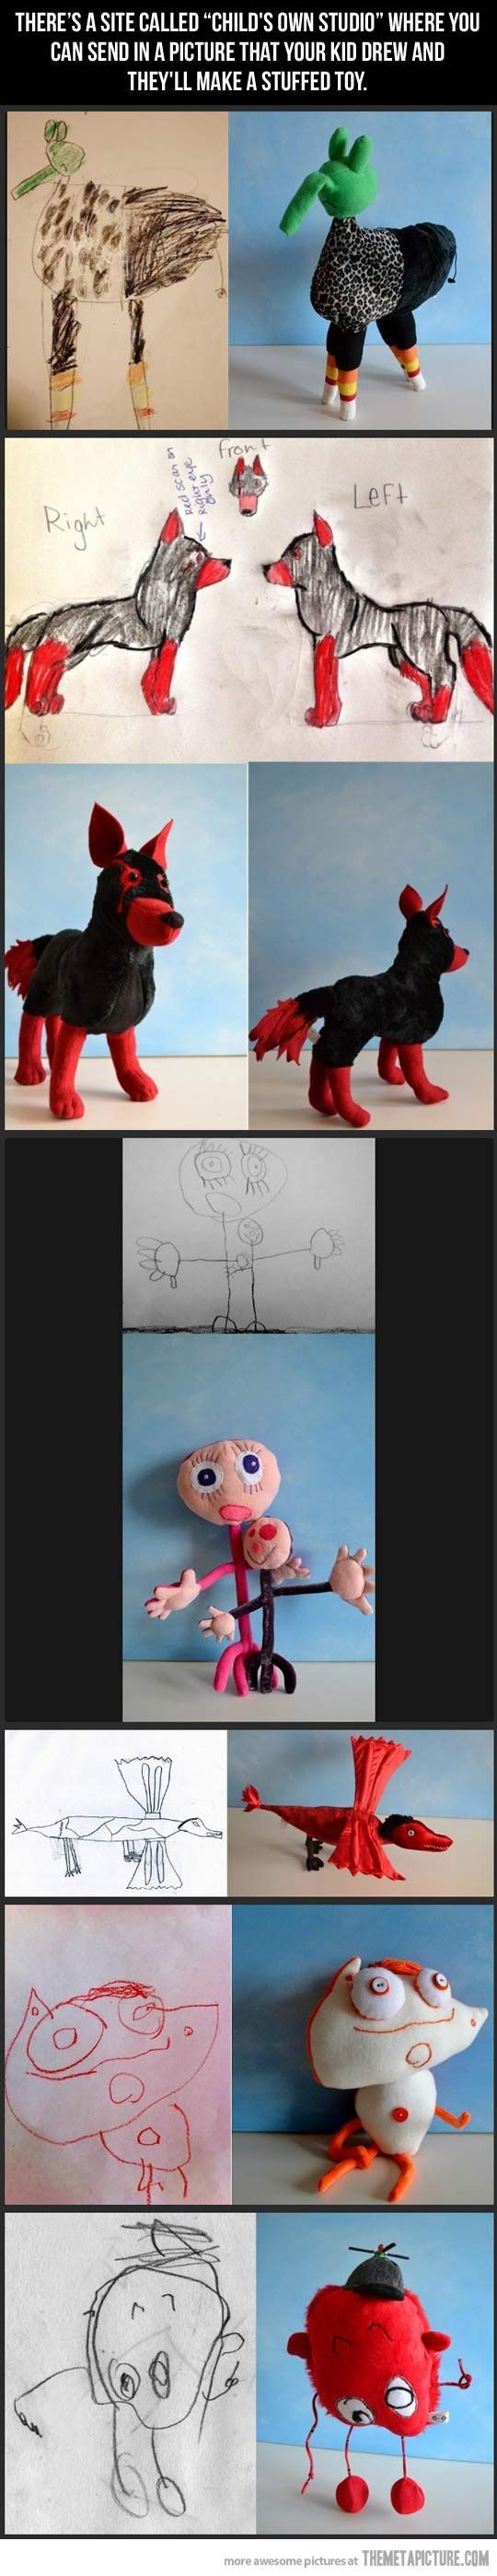 Turn your kids' art creations into real stuffed animals. The hardest part is choosing which creation to send in.